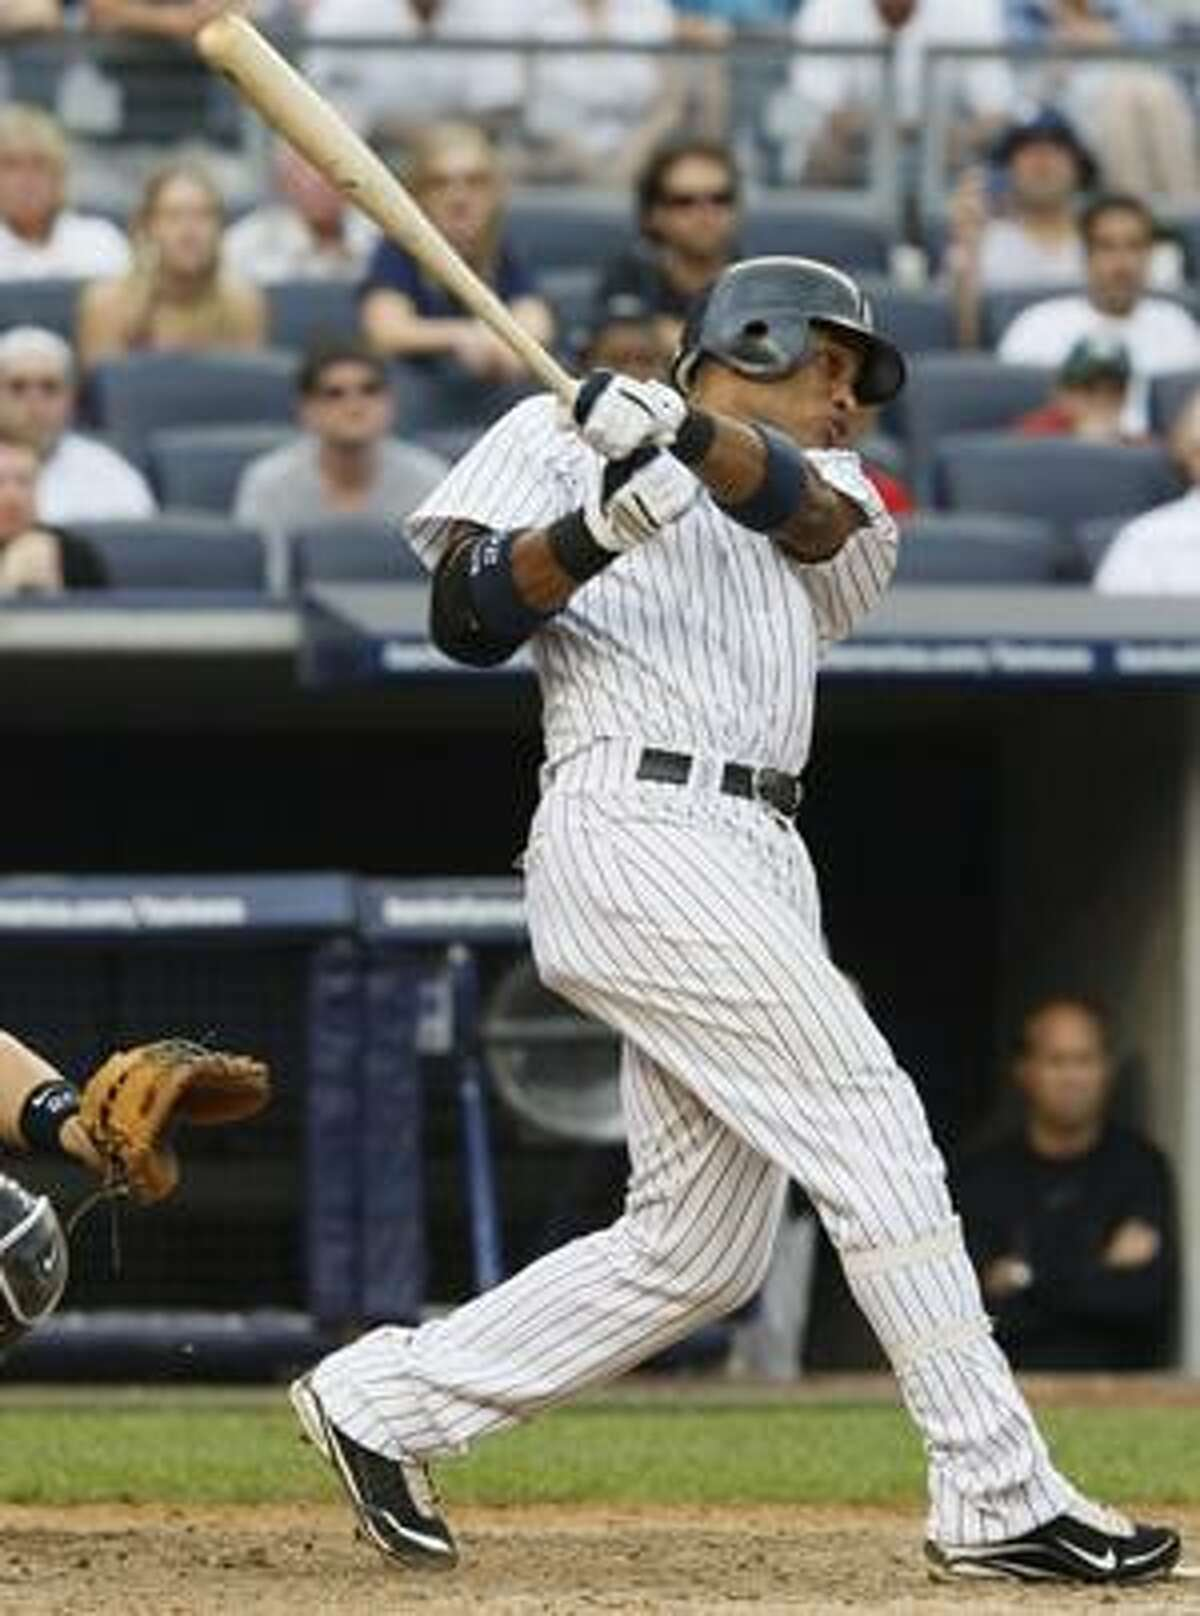 Robinson Cano delivers the game-winning RBI single in the 11th inning of the New York Yankees' 4-3 win over the Toronto Blue Jays at Yankee Stadium Wednesday.